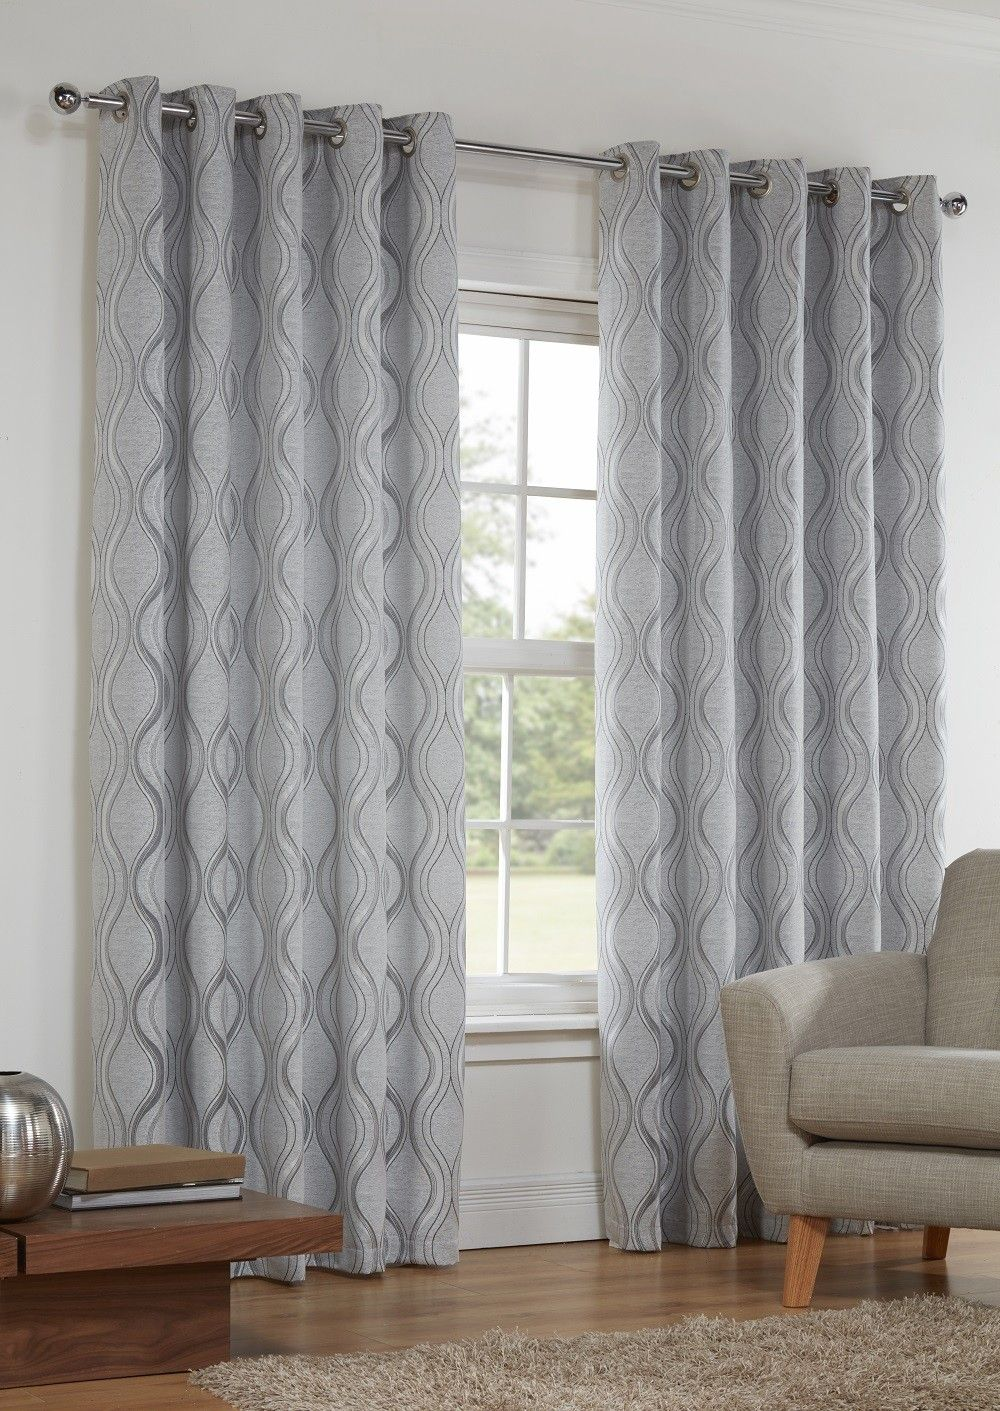 Sienna Silver Lined Eyelet Curtains | Kitchen/ Dinning room ...